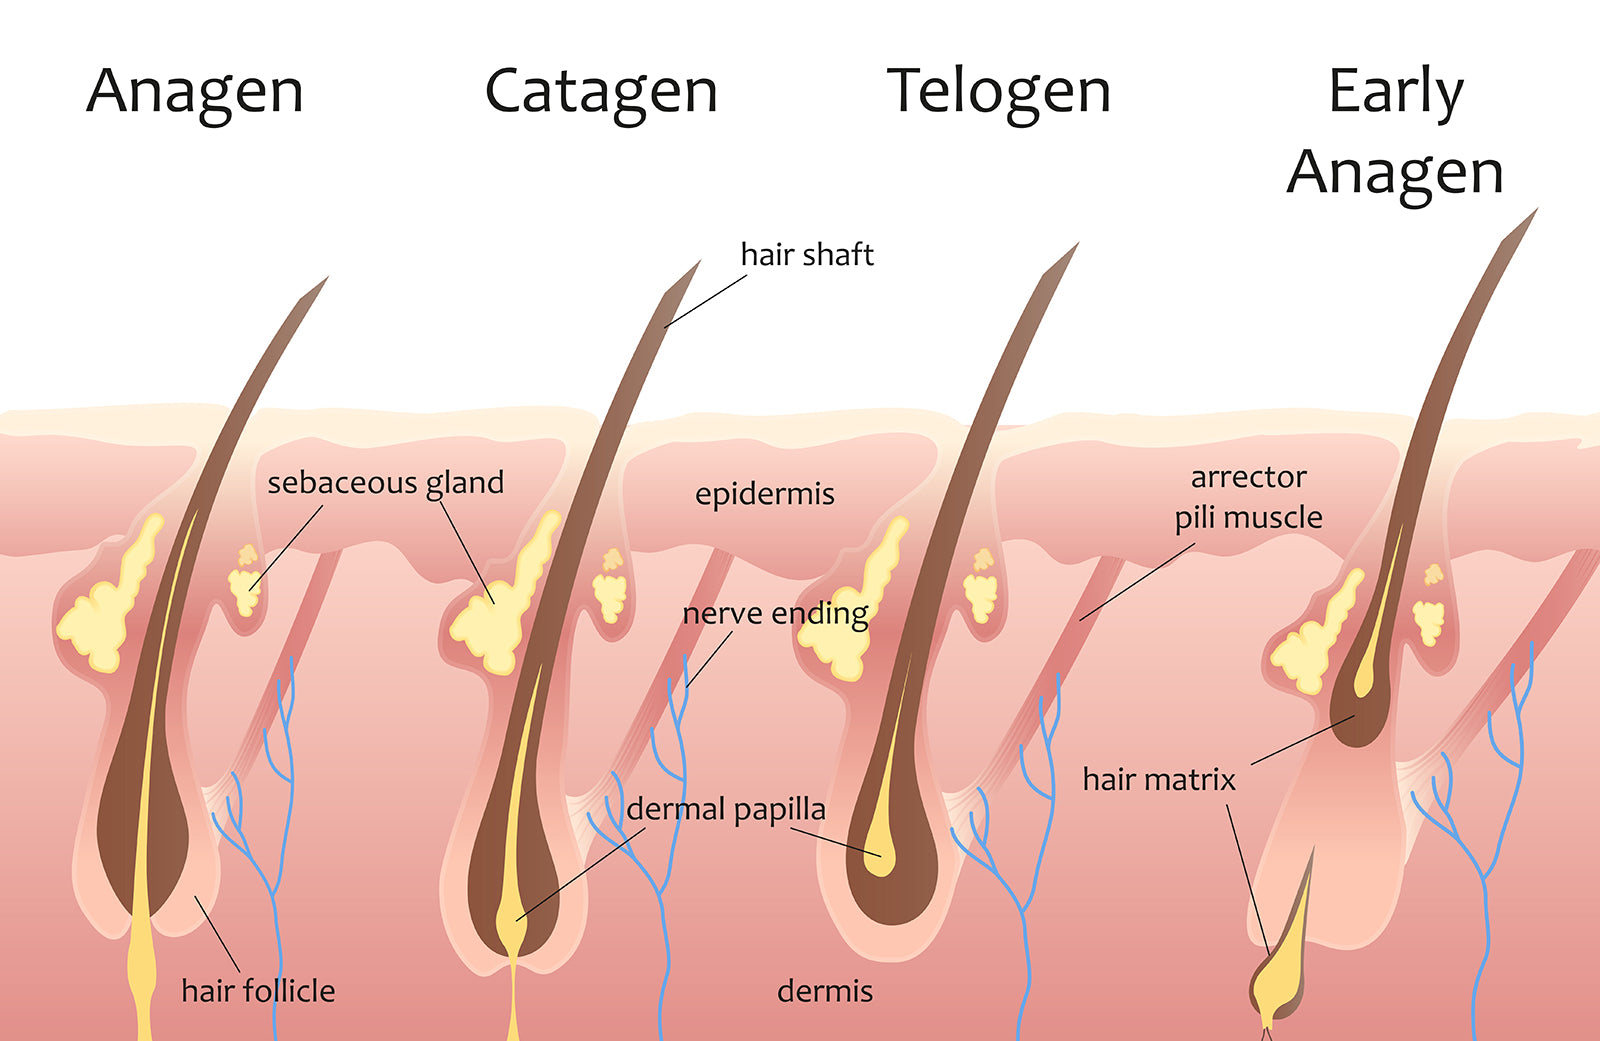 Is Hair Loss Normal in the Hair Growth Cycle?